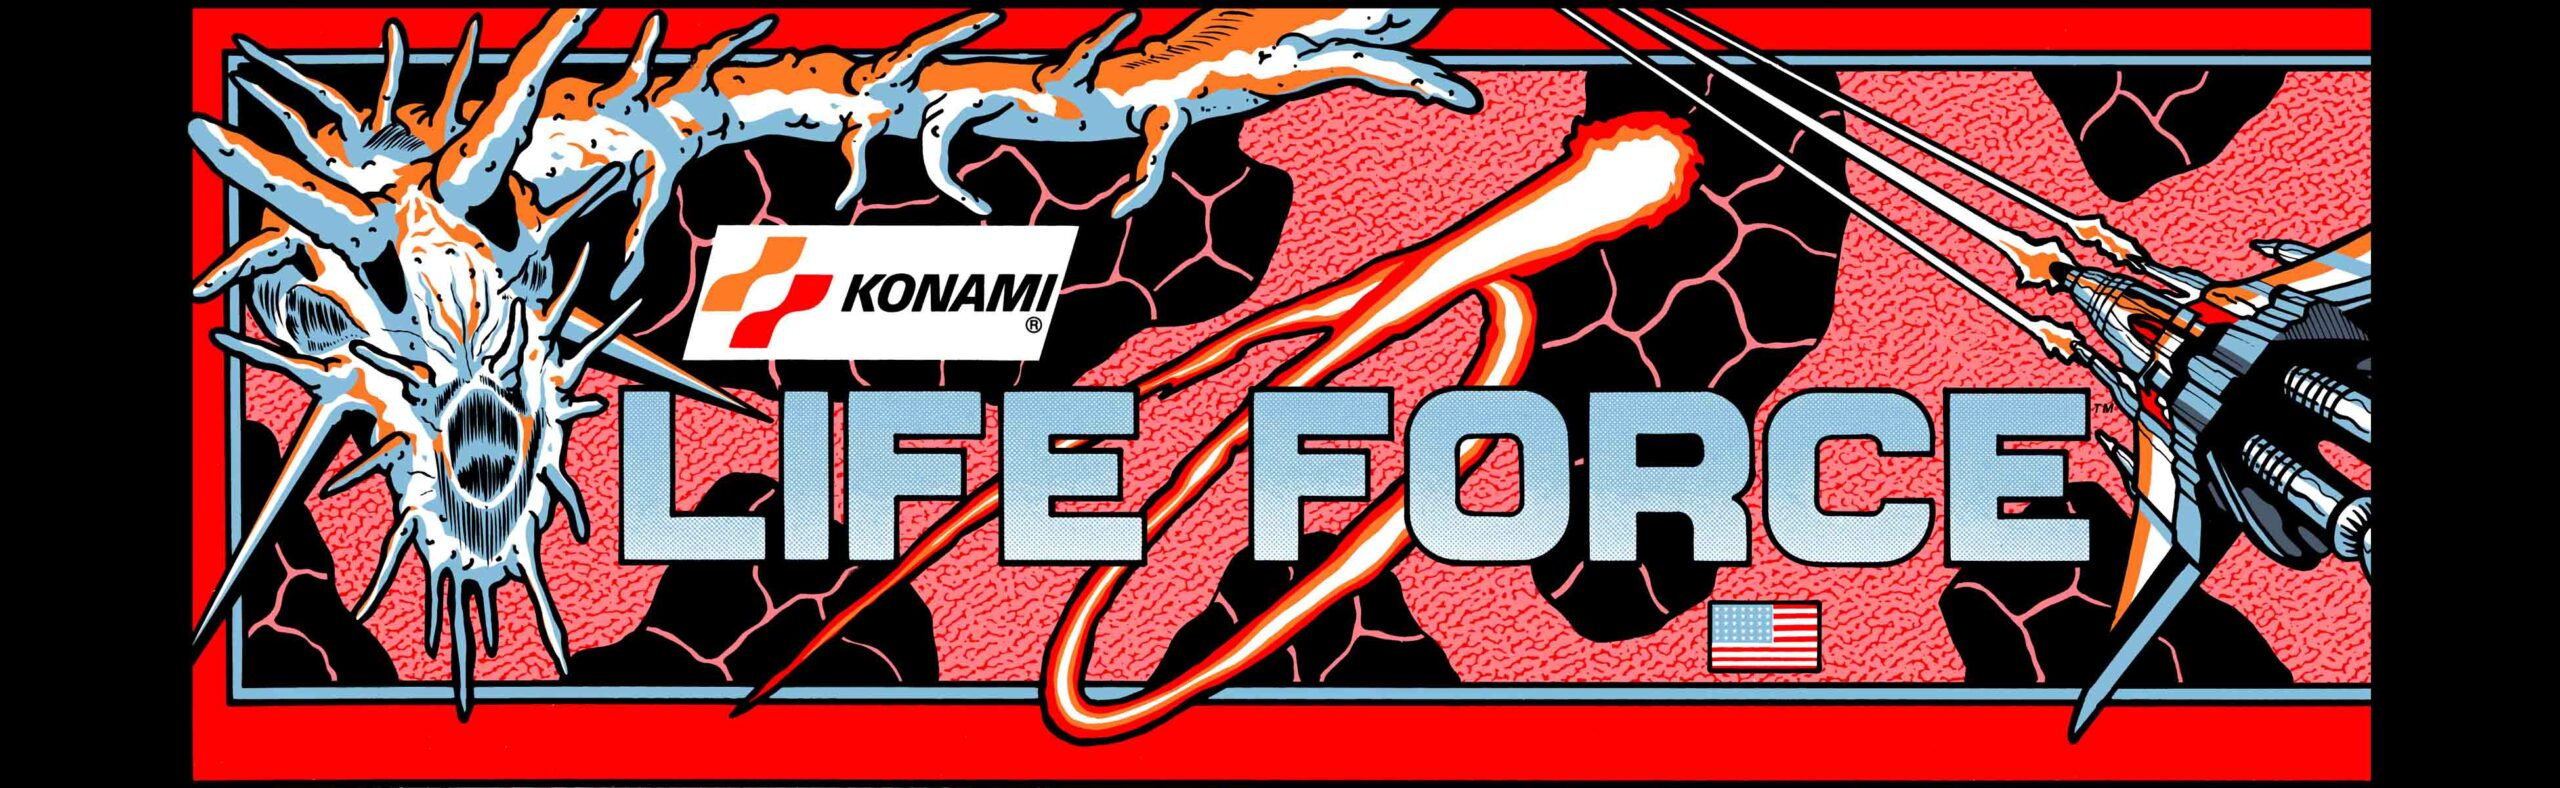 Life Force Arcade Marquee 26″ x 8″